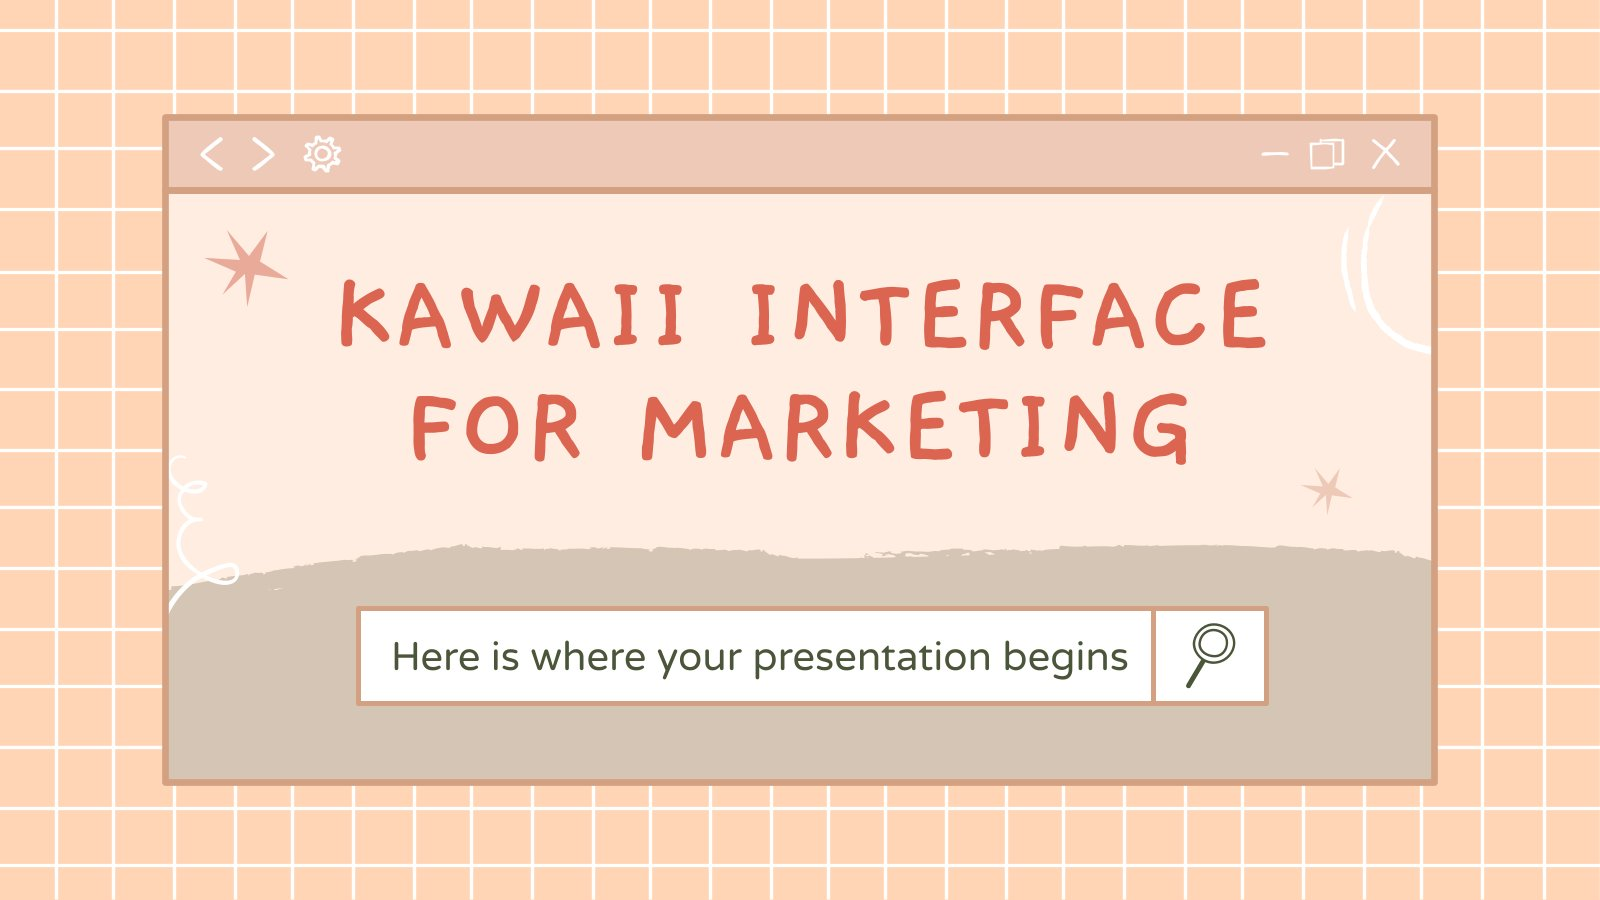 Plantilla de presentación Interfaz kawaii para marketing